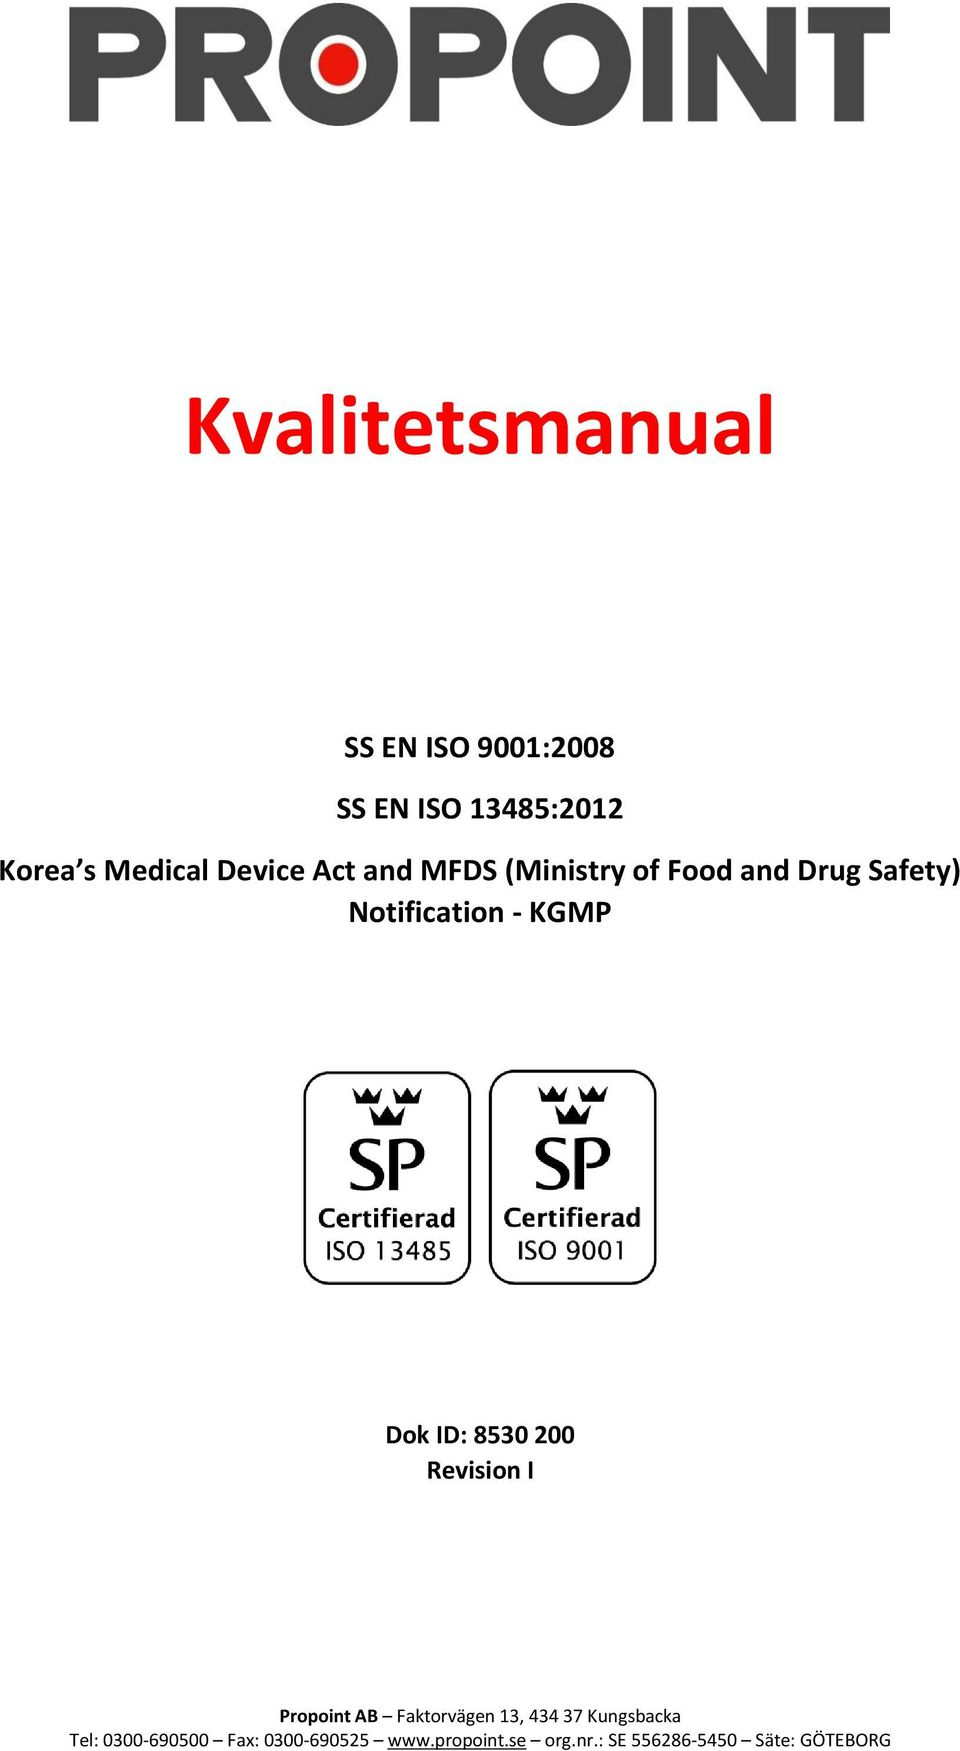 and MFDS (Ministry of Food and Drug Safety)